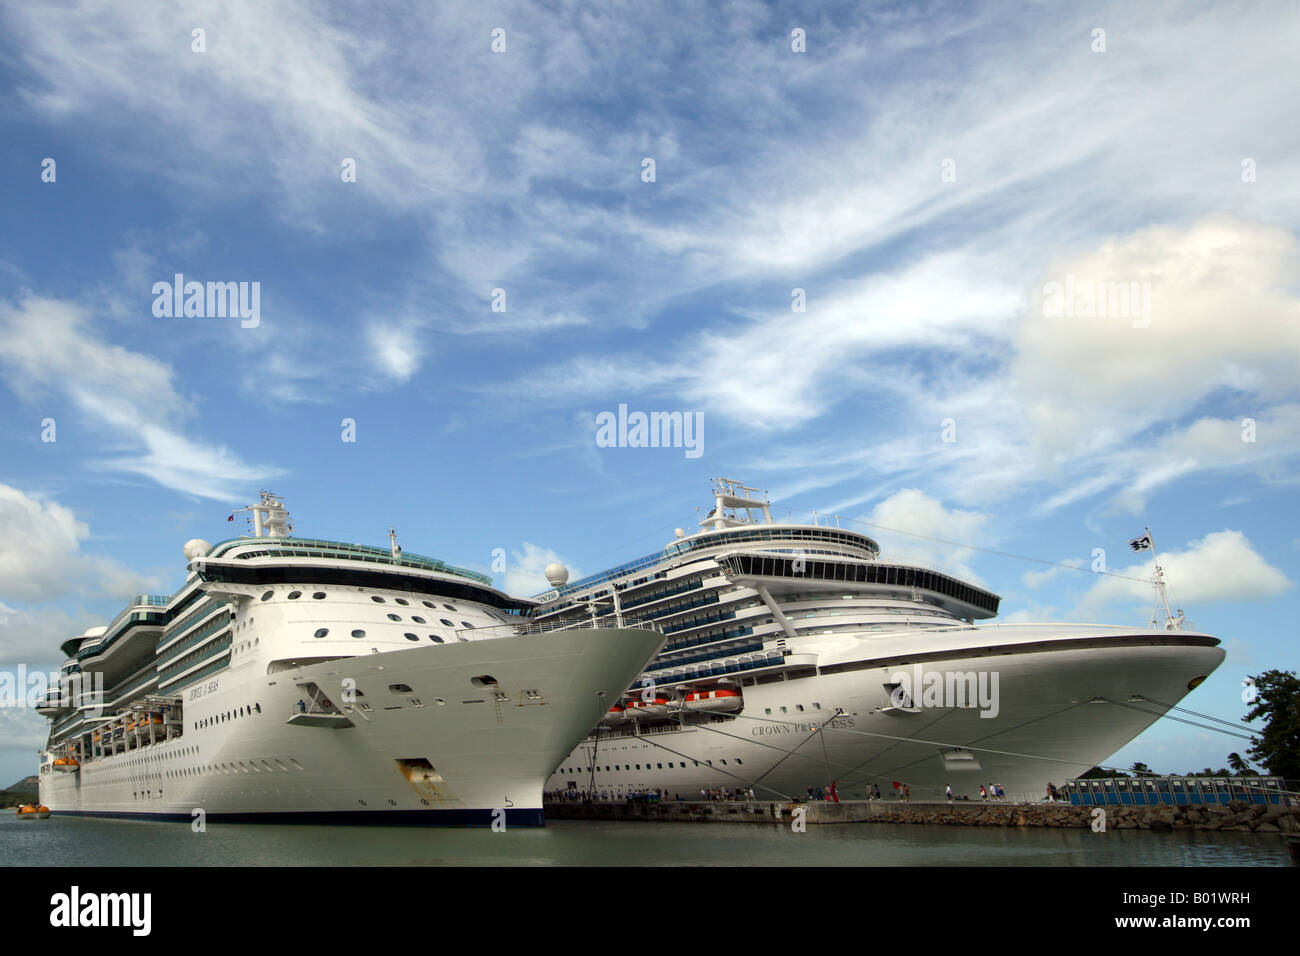 Cruise liners St Johns Harbour, Antigua Caribbean - Stock Image